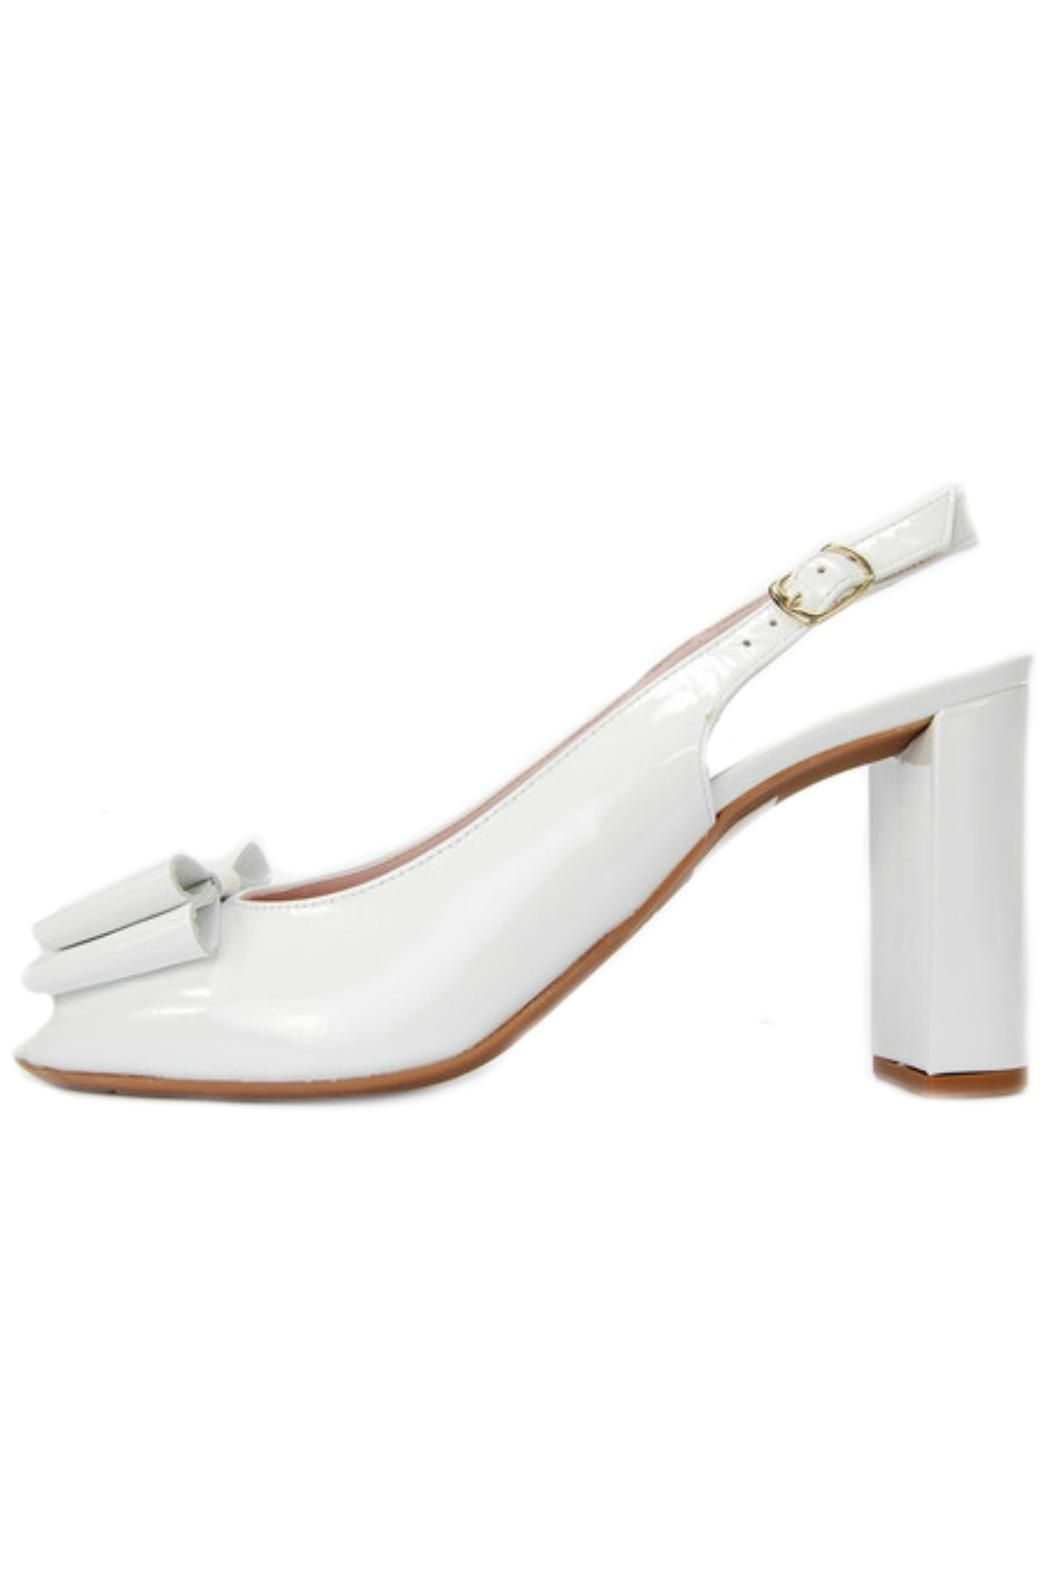 540c7293eb An Italian made white patent leather slingback by Le Babe with with a peep  toe,